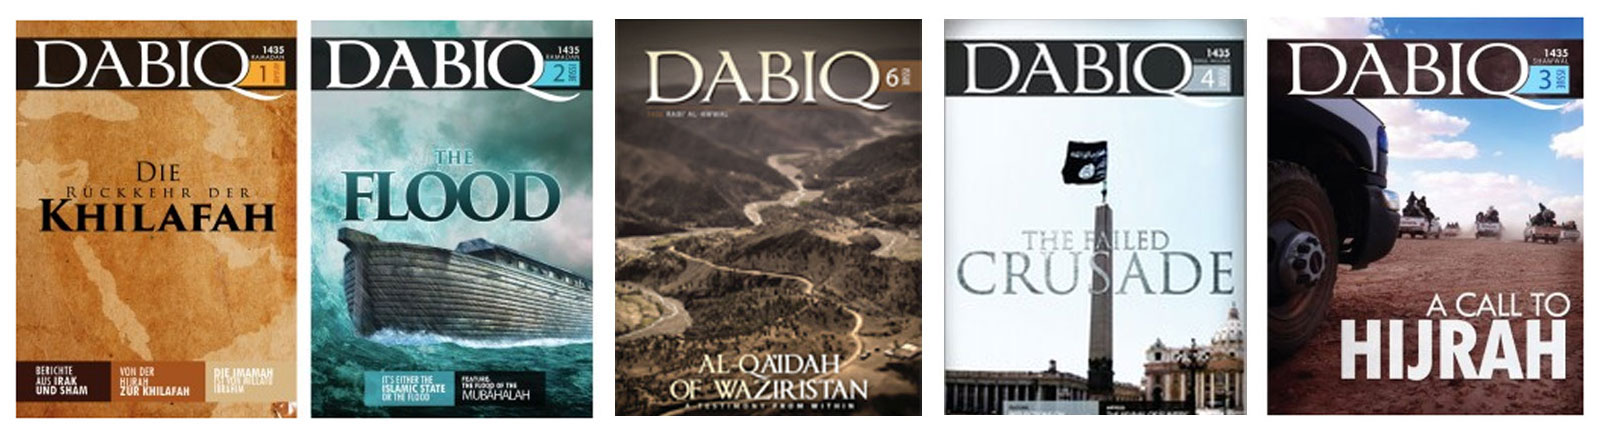 Screenshot des IS-Propaganda-Magazins Dabiq